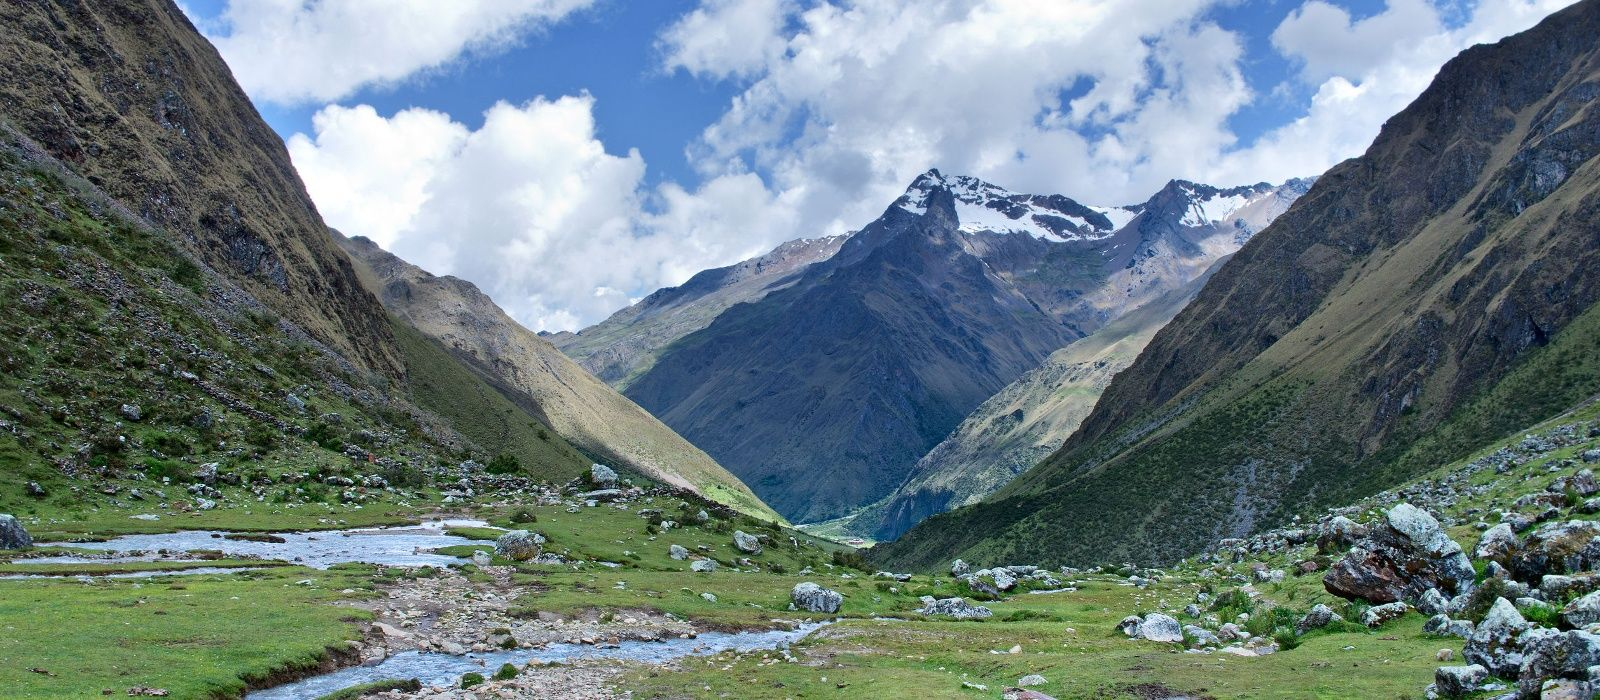 Destination Salkantay Trek Peru